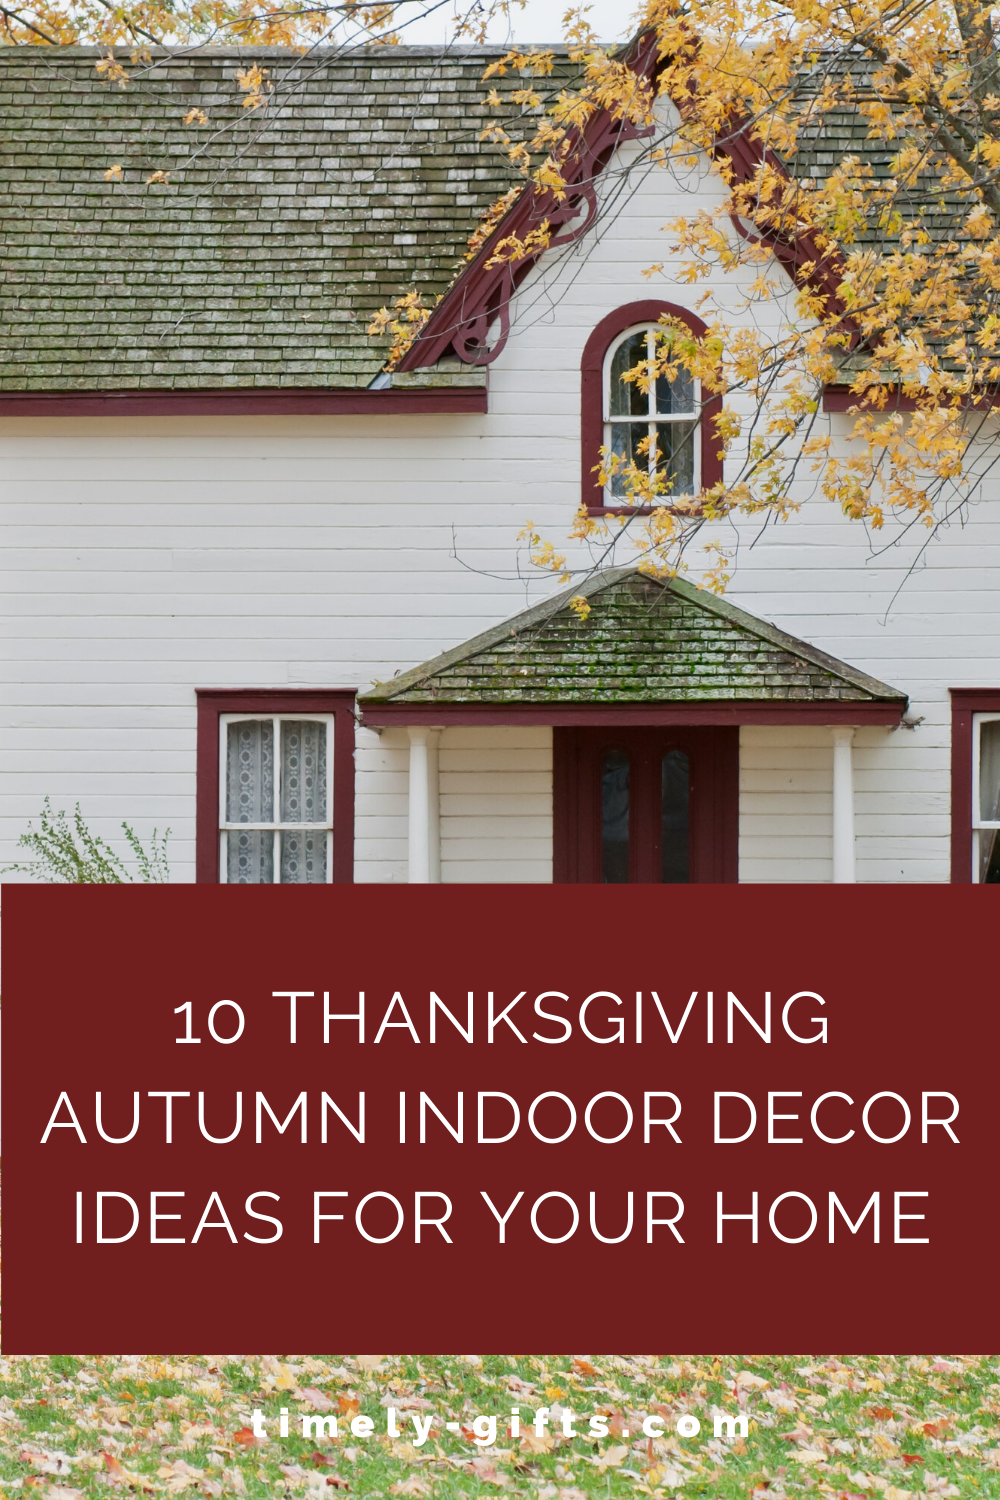 See these great thanksgiving indoor decor ideas? This article will have 10 festive indoor decor ideas for thanksgiving and autumn! See these great decor ideas to make your house feel more like autumn and fall! #thanksgiving #thanksgivingdecor #falldecor #autumndecor #indoordecor #decorideas #seasondecor #pumpkindecor #fundecor #easydecor #holidaydecor #fauxdecor